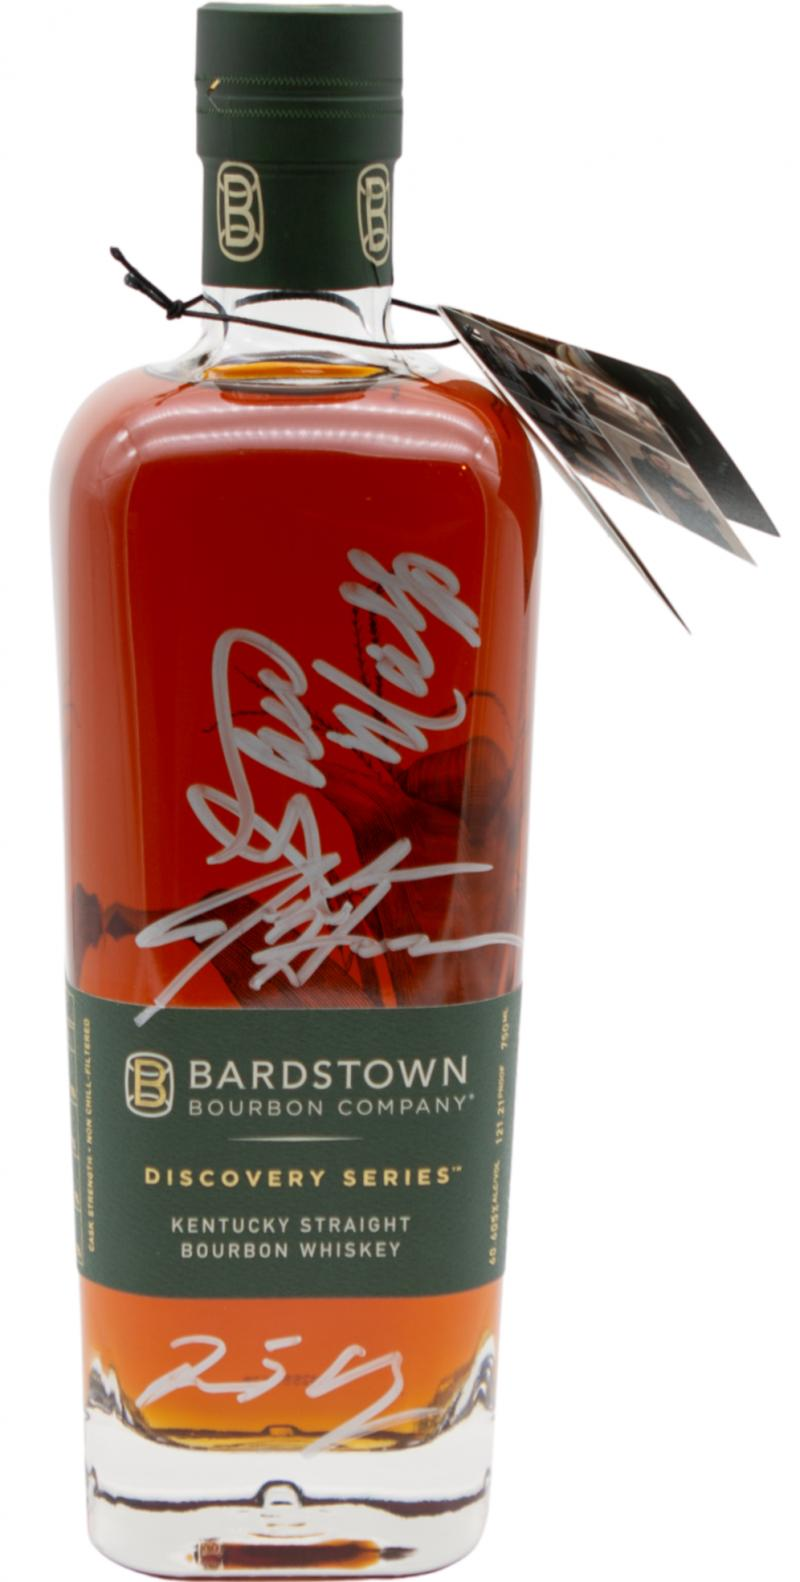 Bardstown Bourbon Company Discovery Series #1